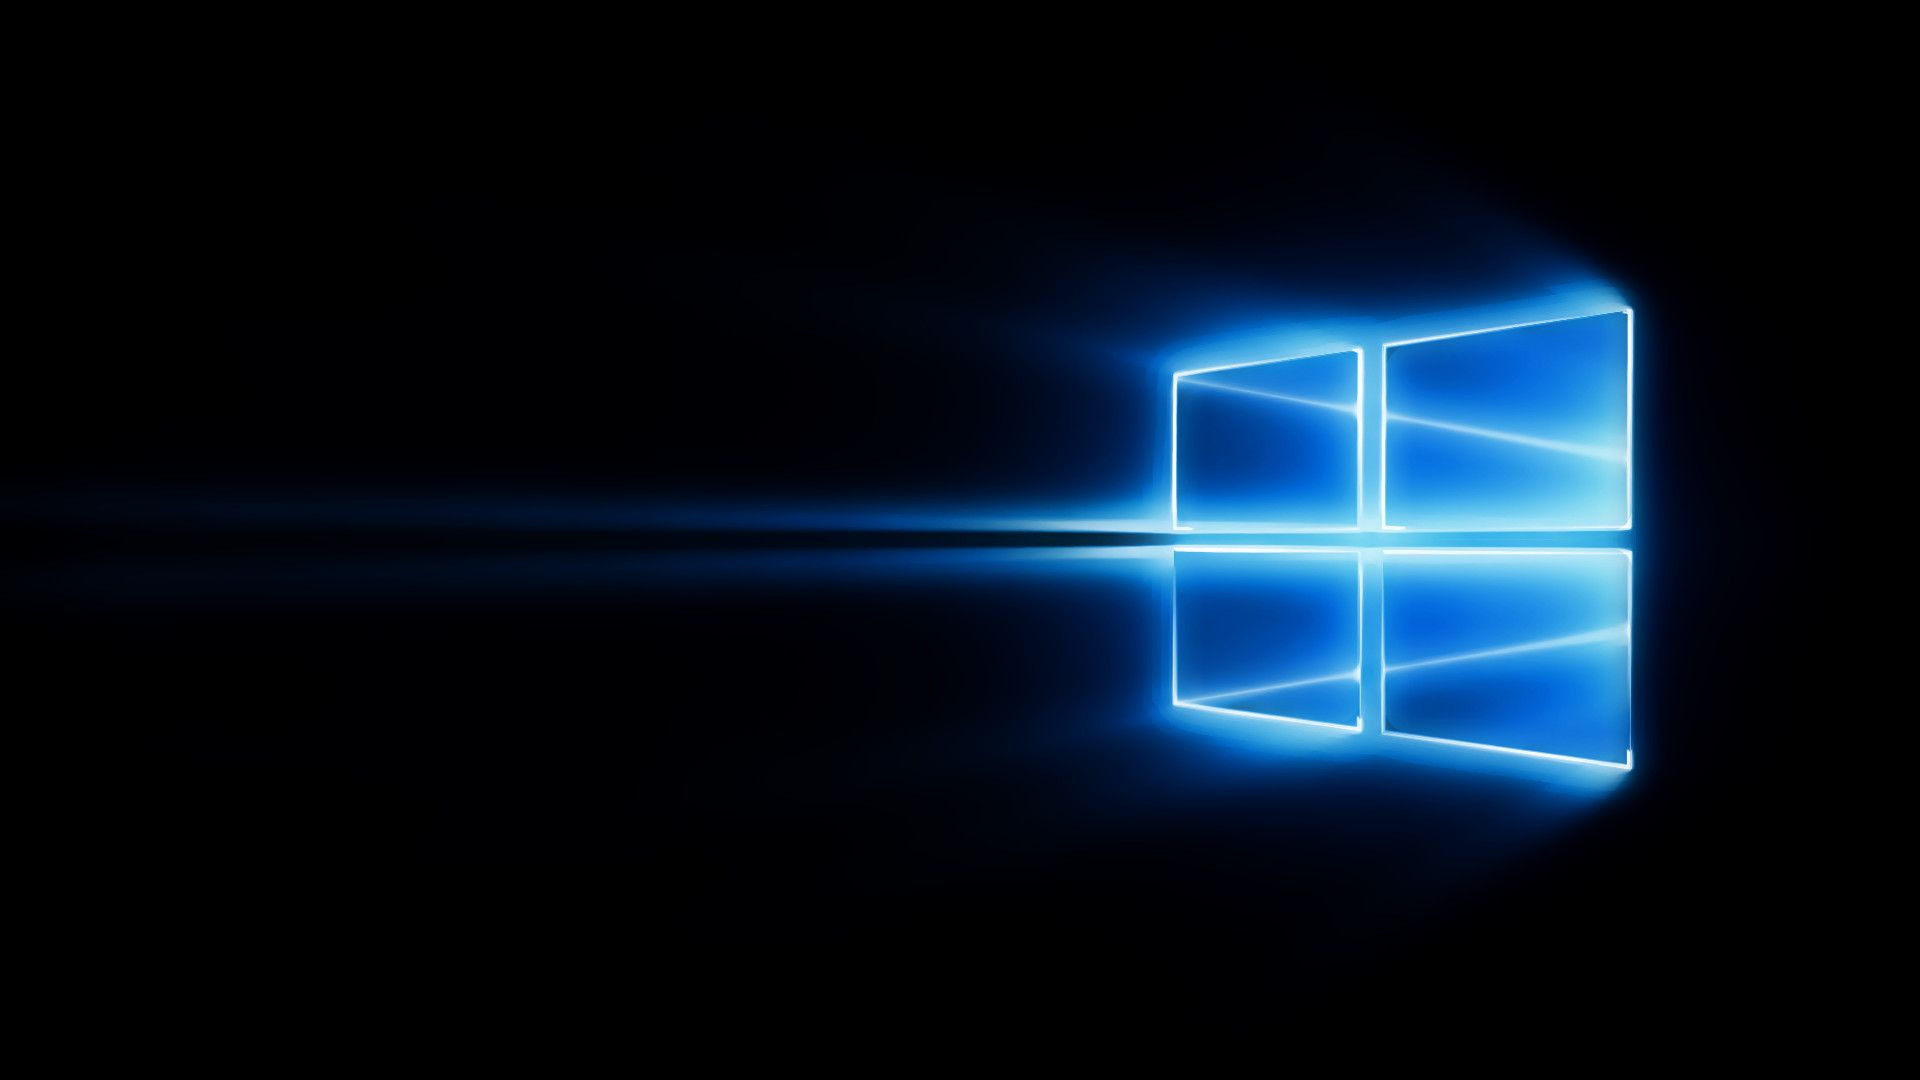 Windows 10 Wallpaper Hd 1 Wallpaper Windows 10 Windows 10 Logo Windows 10 Background